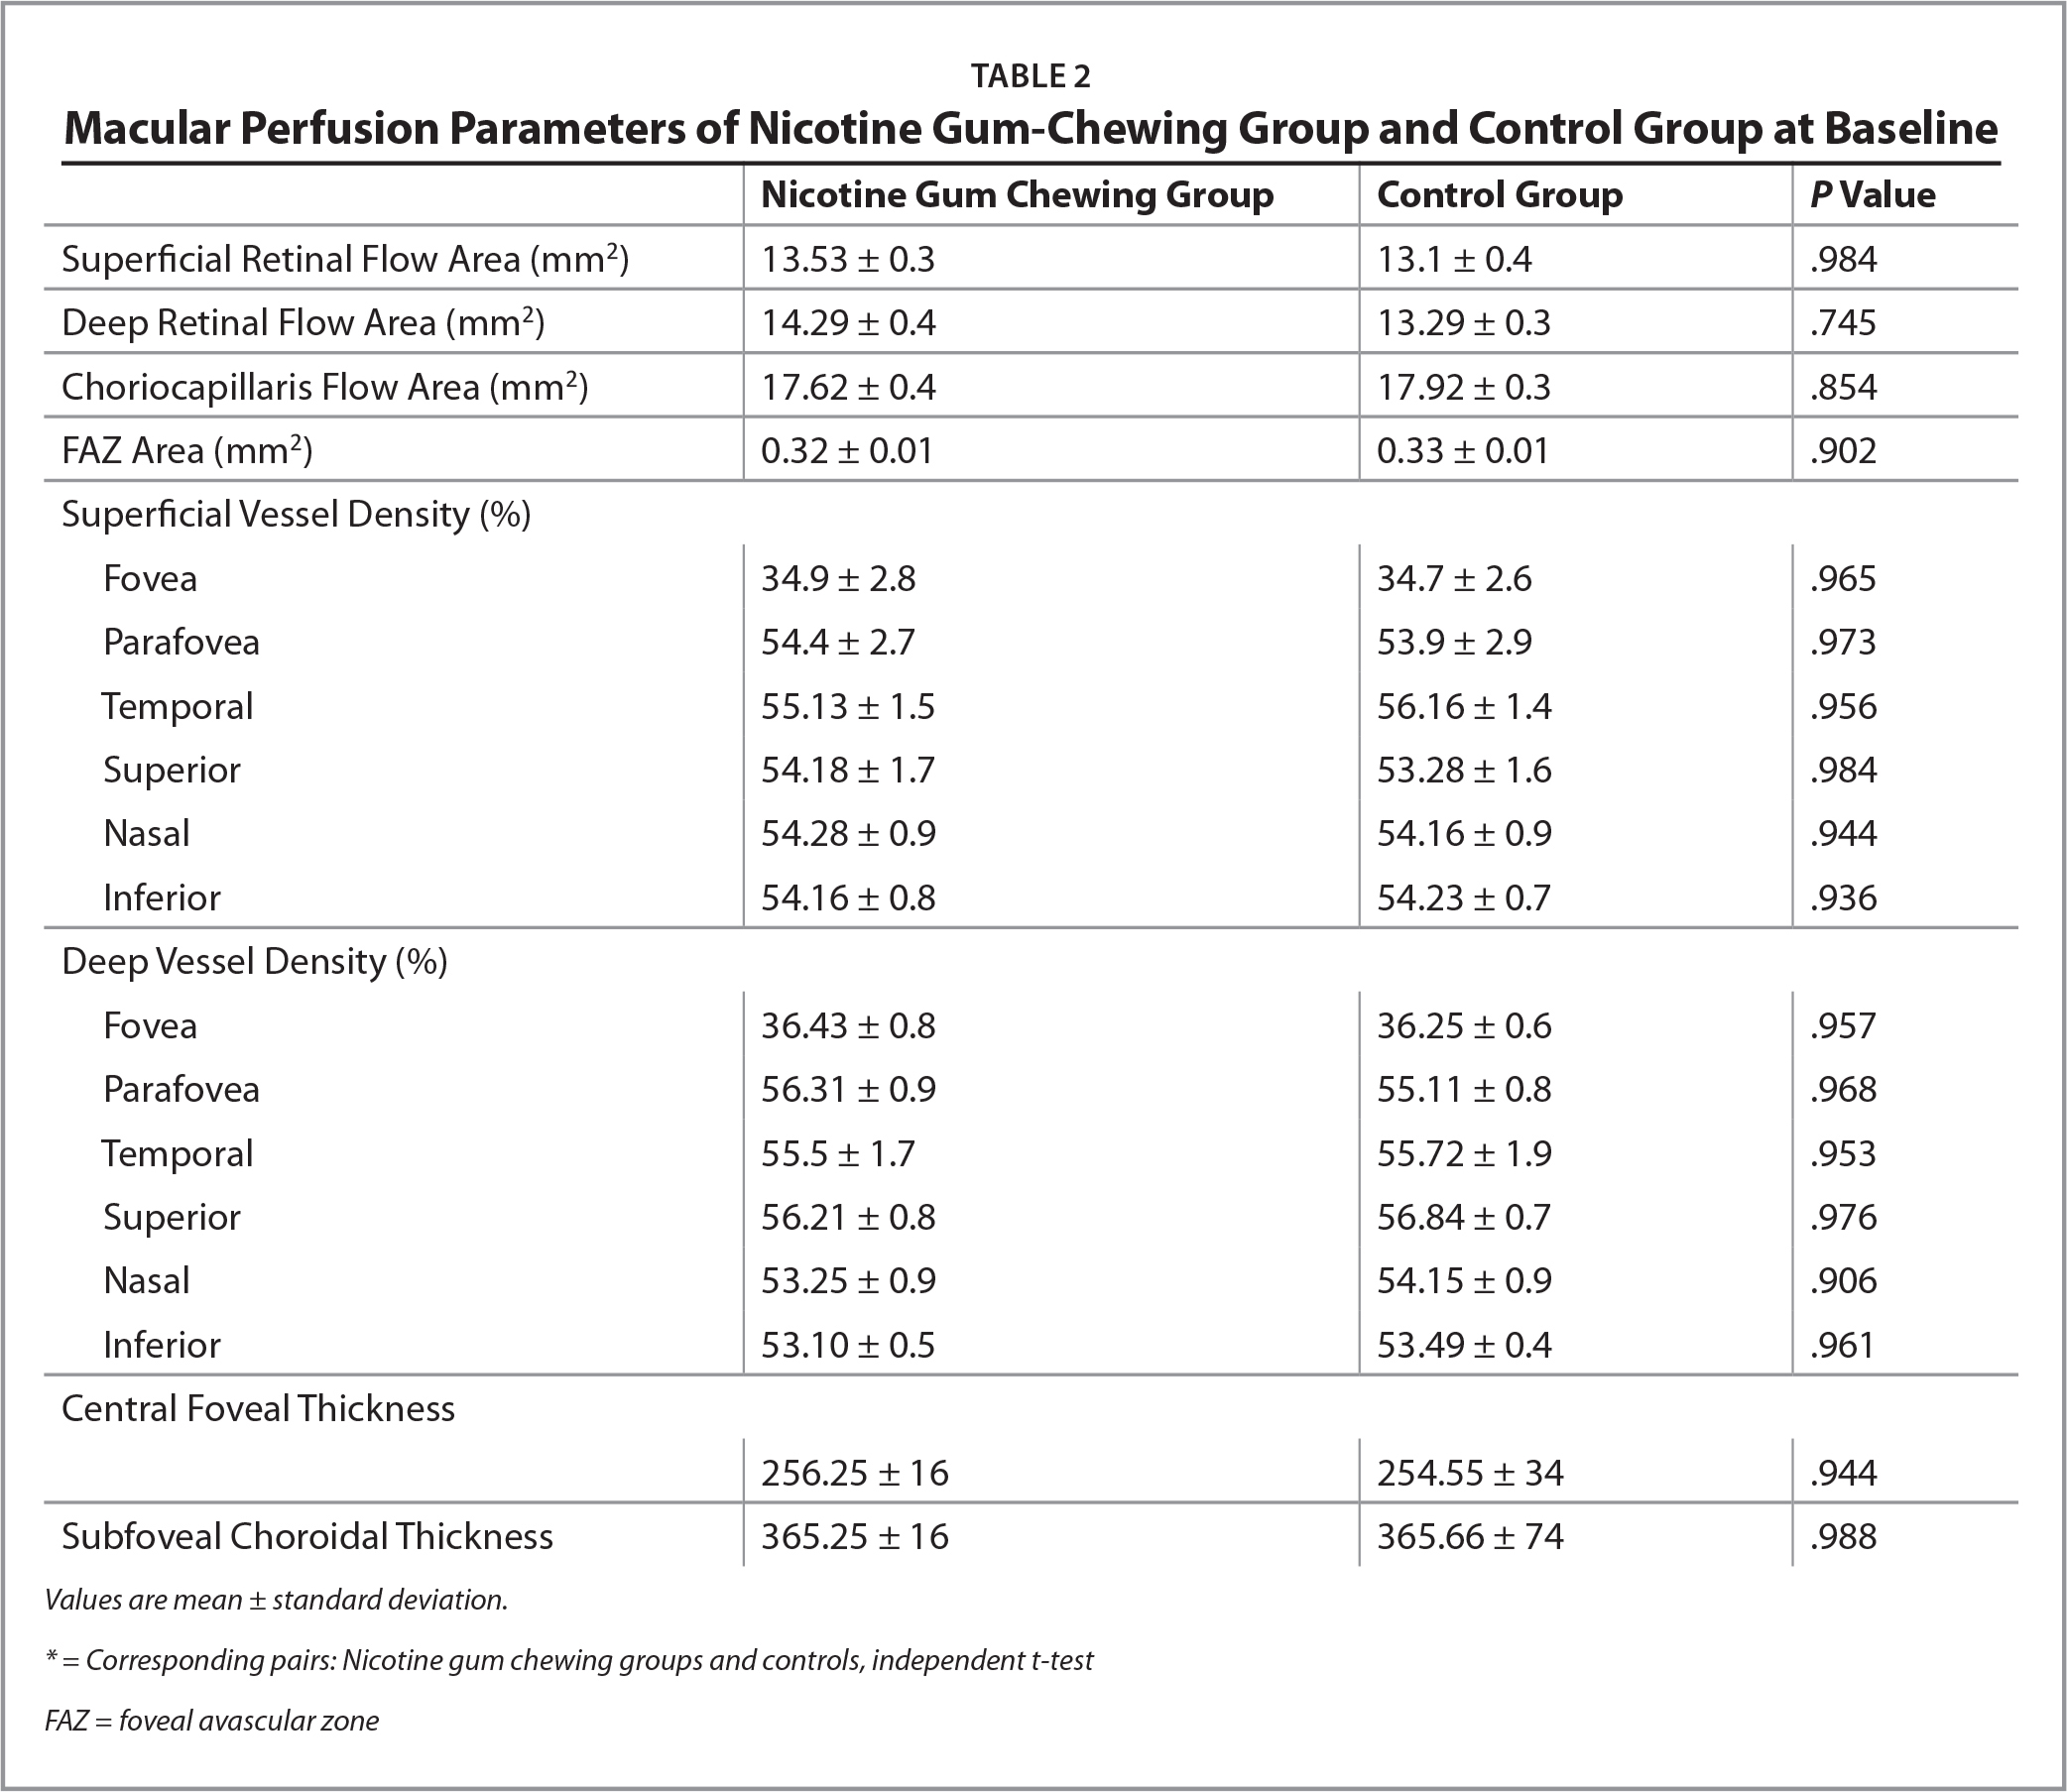 Macular Perfusion Parameters of Nicotine Gum-Chewing Group and Control Group at Baseline